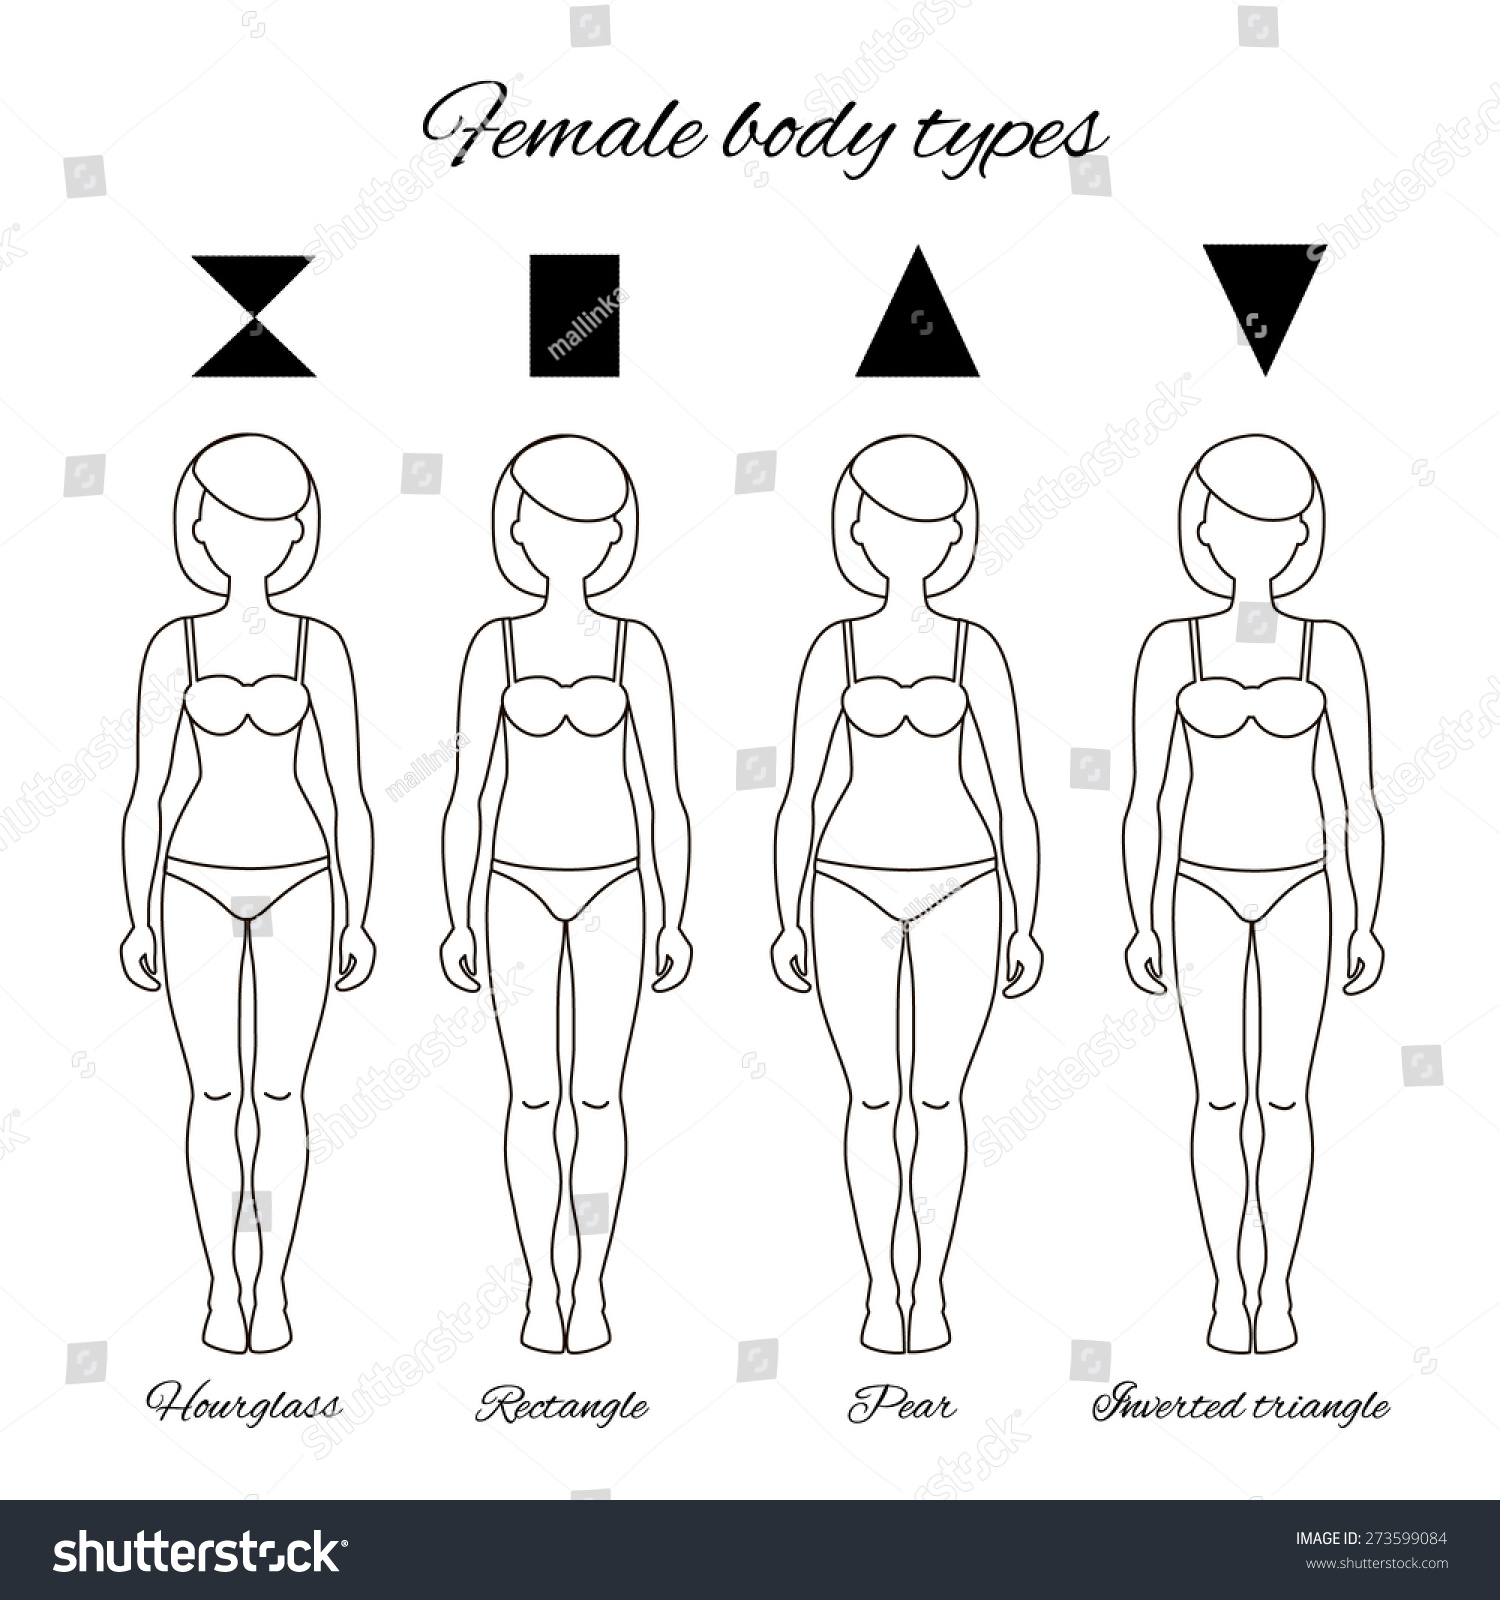 b94eae33b3 Vector illustration of different women s figures. Four female body types   hourglass